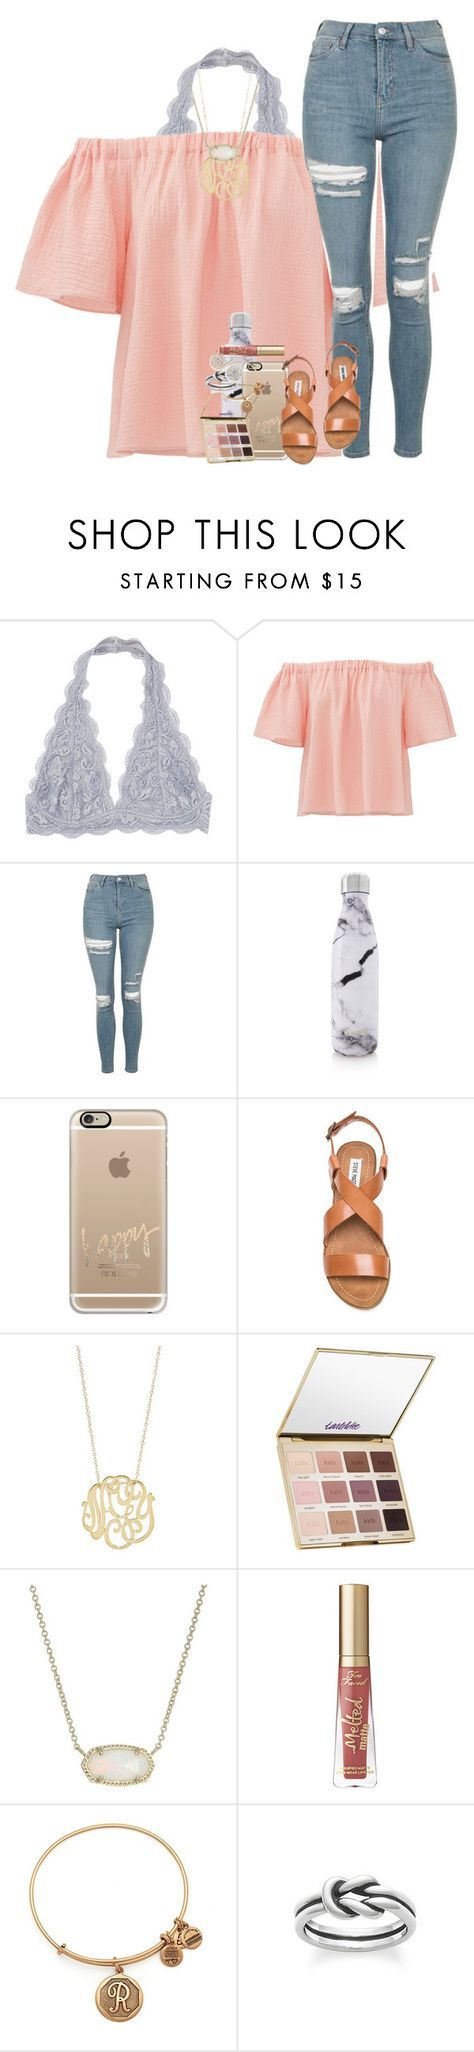 """you're the fire & the flood."" by ellaswiftie13 ❤ liked on Polyvore featuring Rebecca Taylor, Topshop, S'well, Casetify, Steve Madden, Ginette NY, tarte, Kendra Scott, Alex and Ani and Avery"